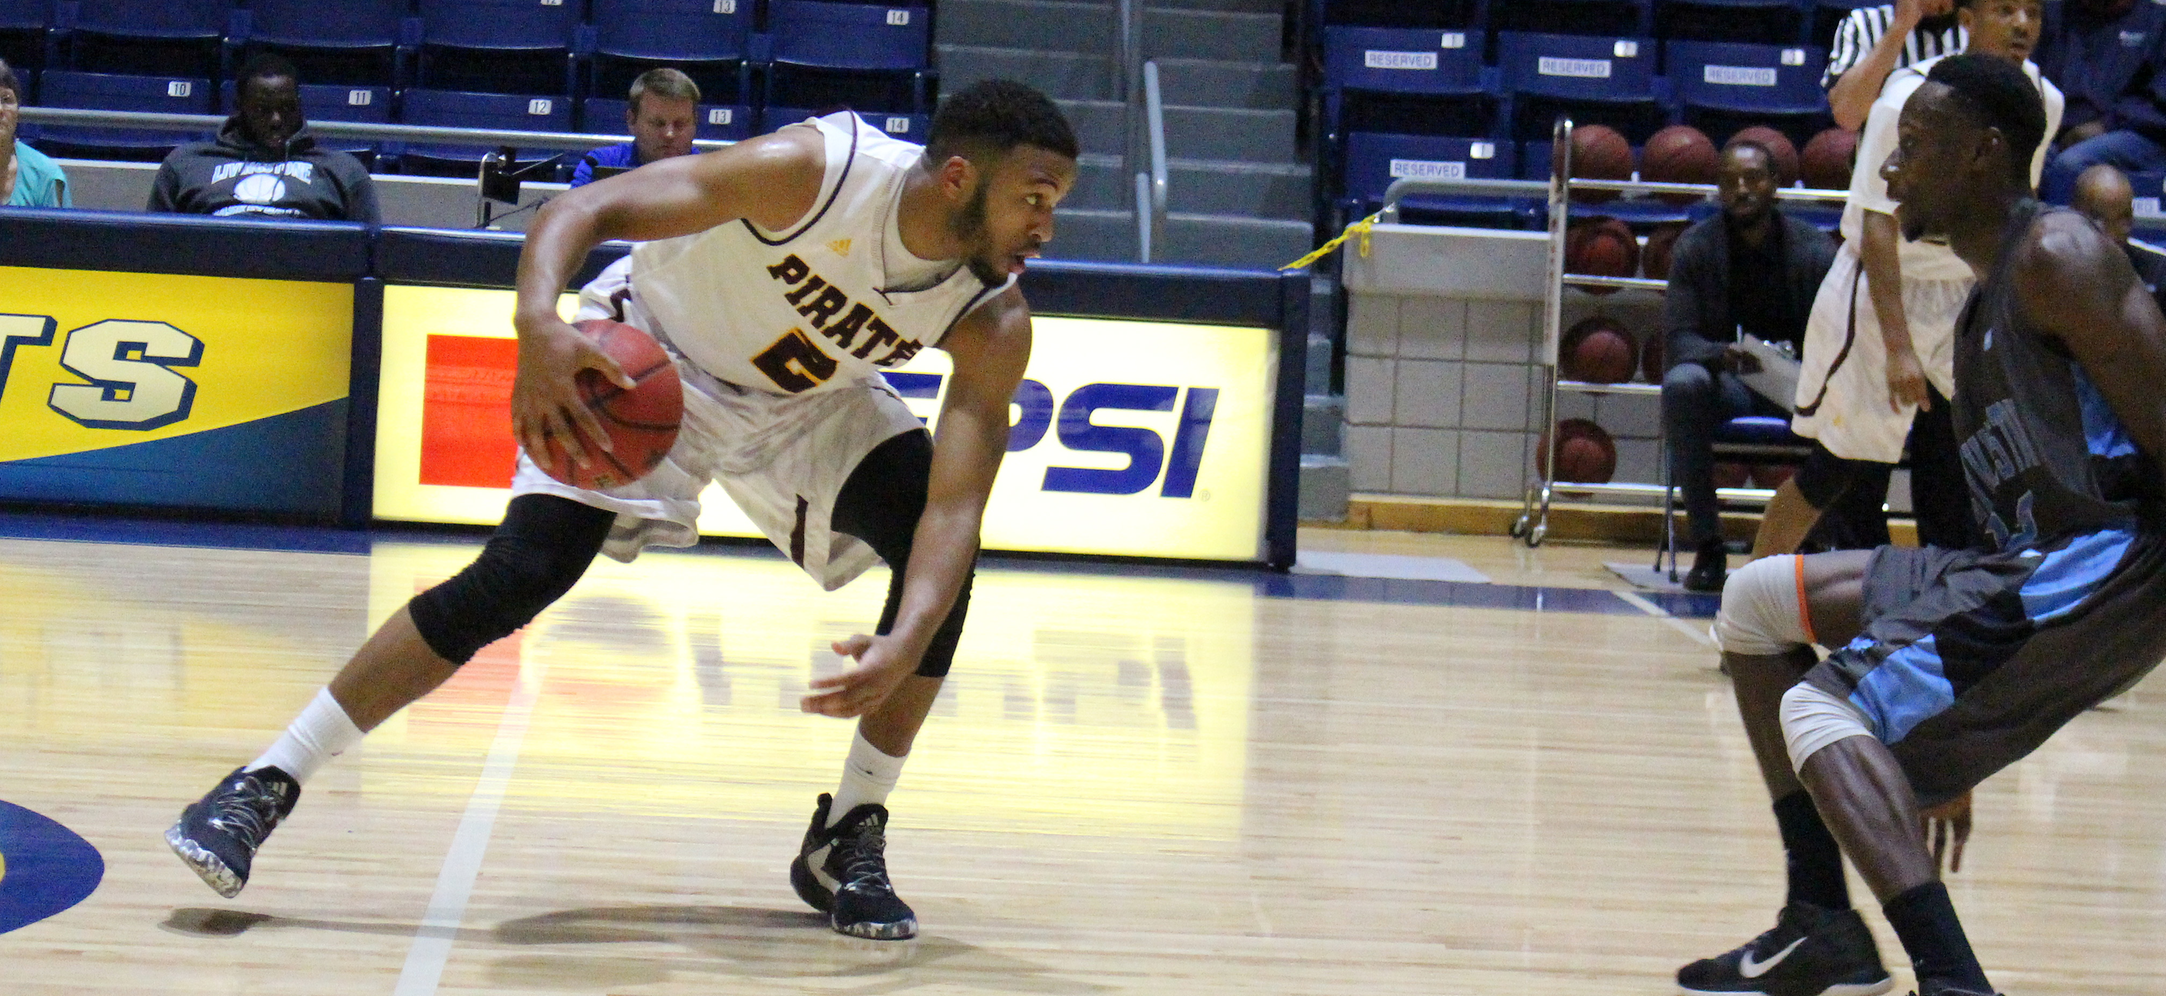 Pirates Nab Third Straight Win, Defeat Livingstone 80-76 on Friday